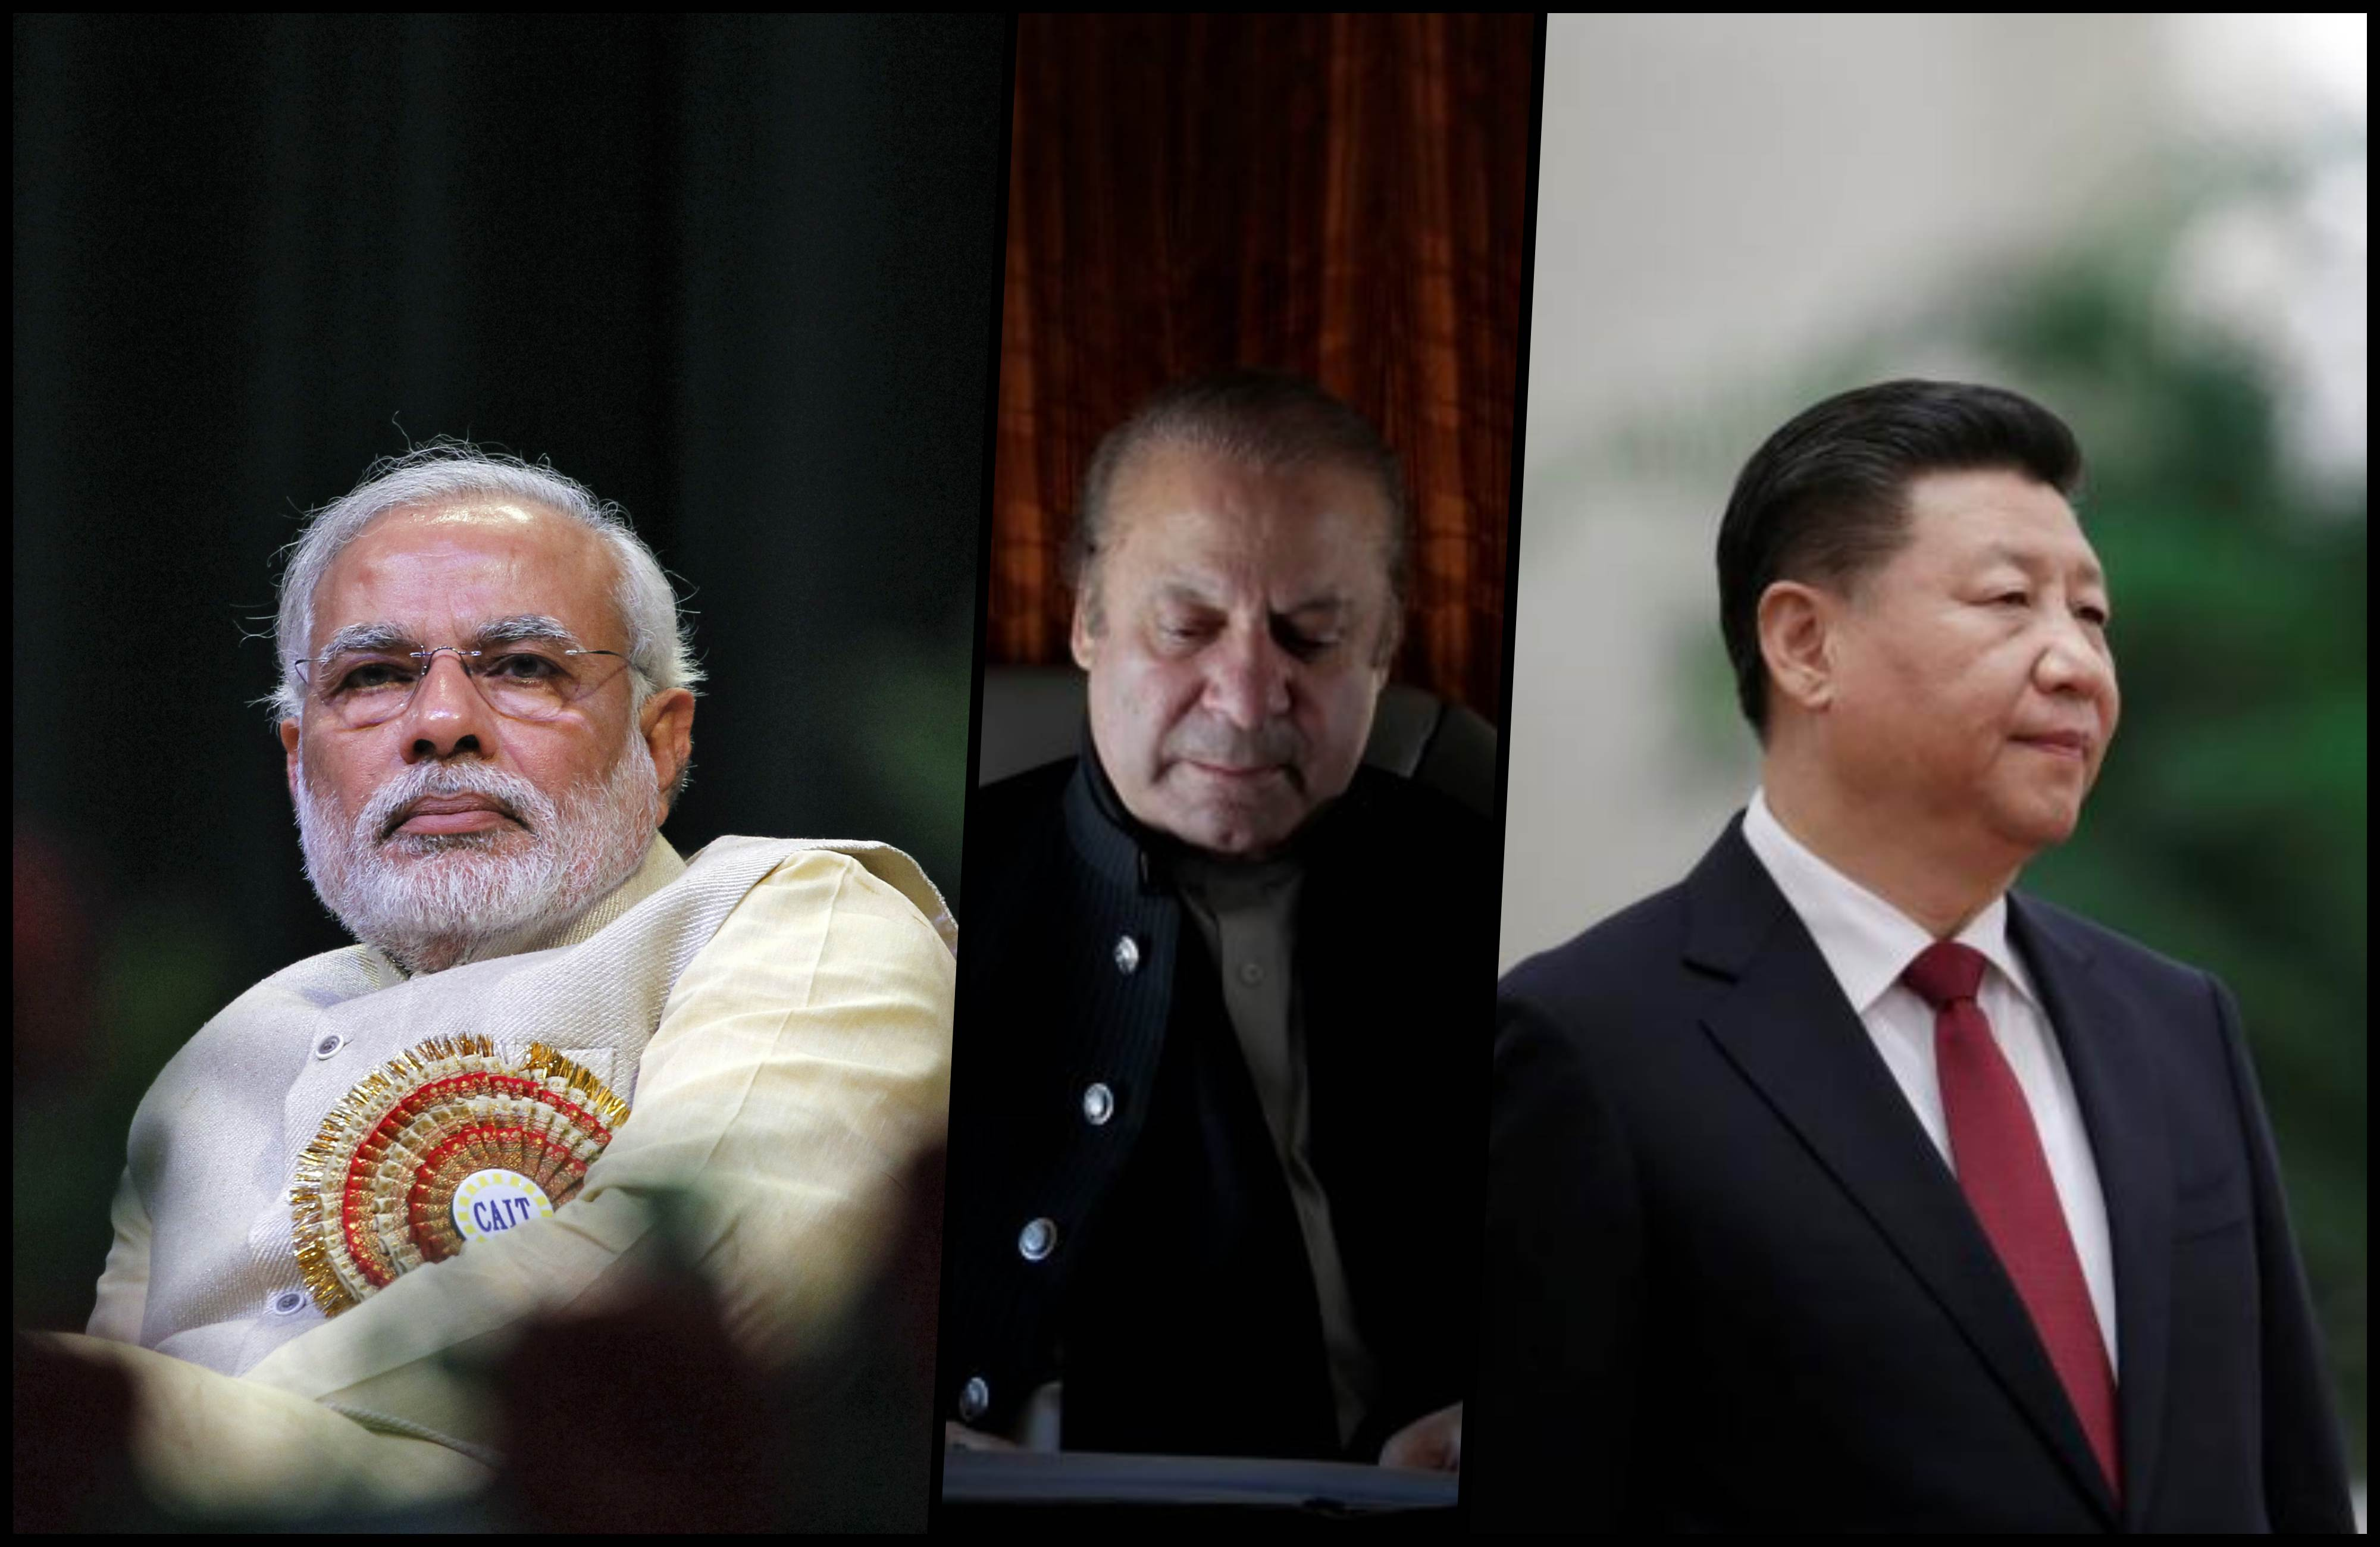 Brace Yourself, South Asia's Geopolitics Is Becoming More Complex, Less Stable